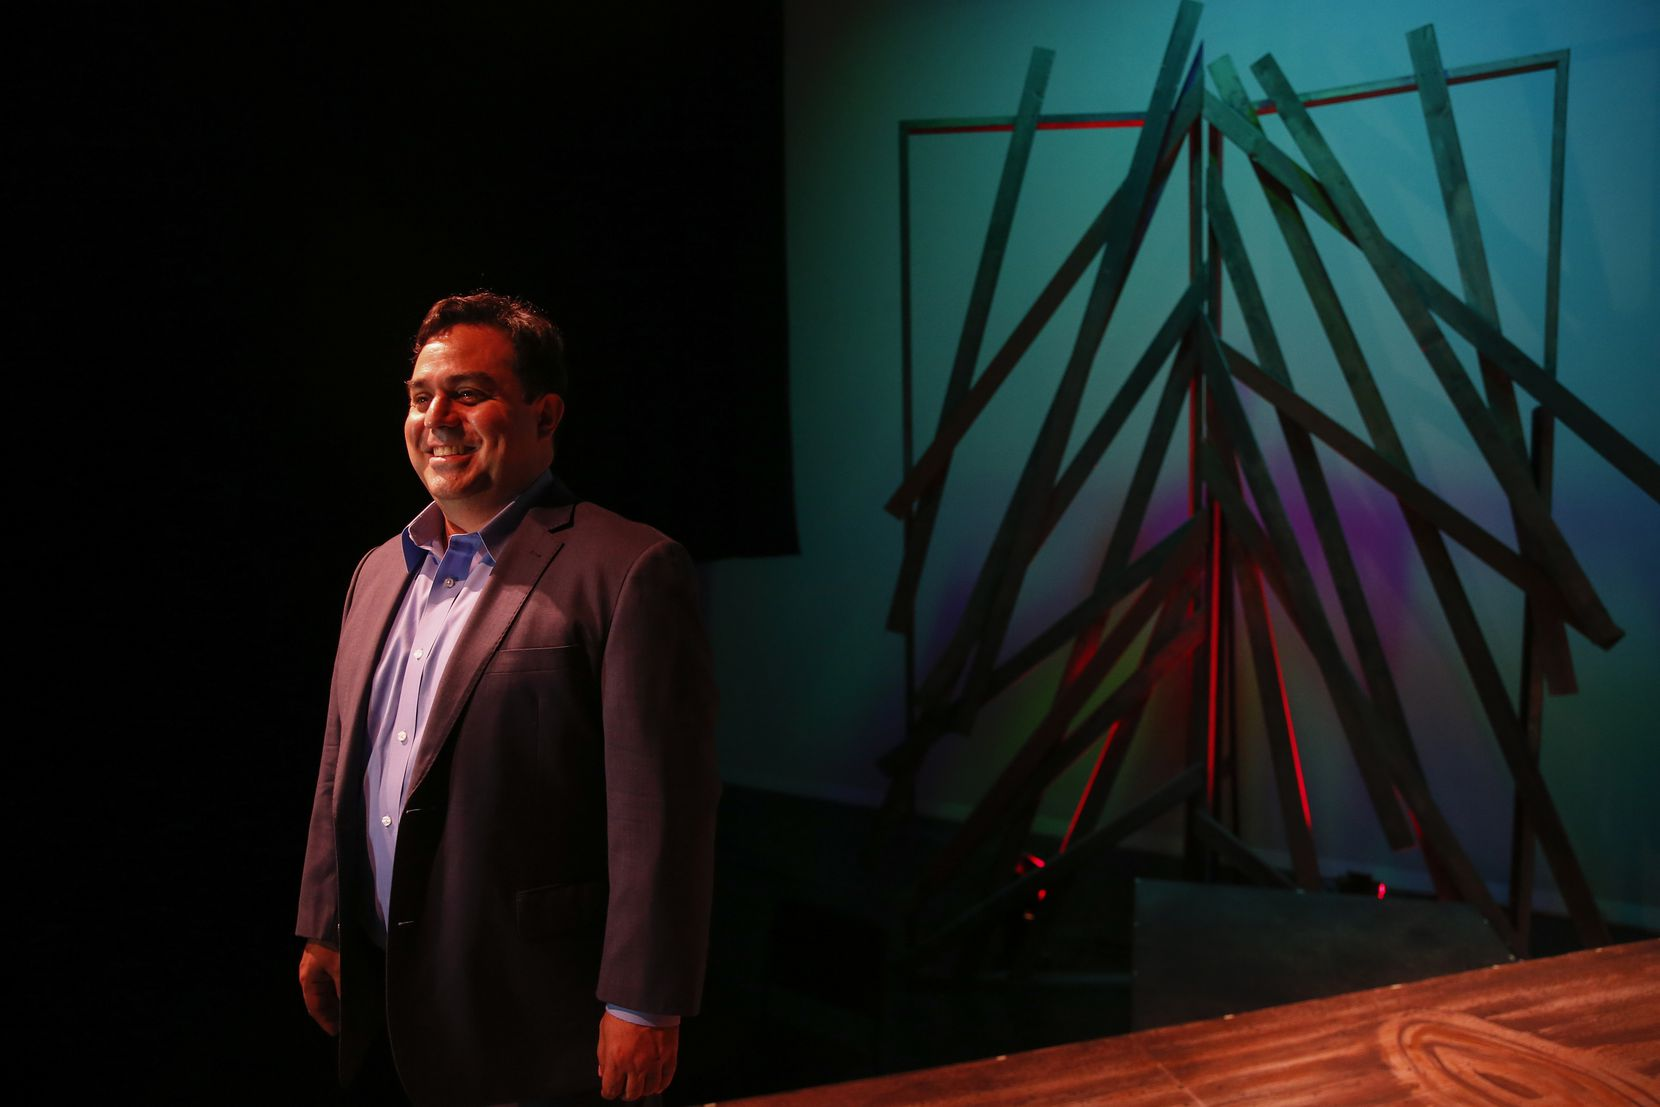 David Lozano, the executive artistic director of Cara Mia Theatre, poses for a photograph on Wednesday, Dec. 11, 2019 at the Latino Cultural Center in Dallas.